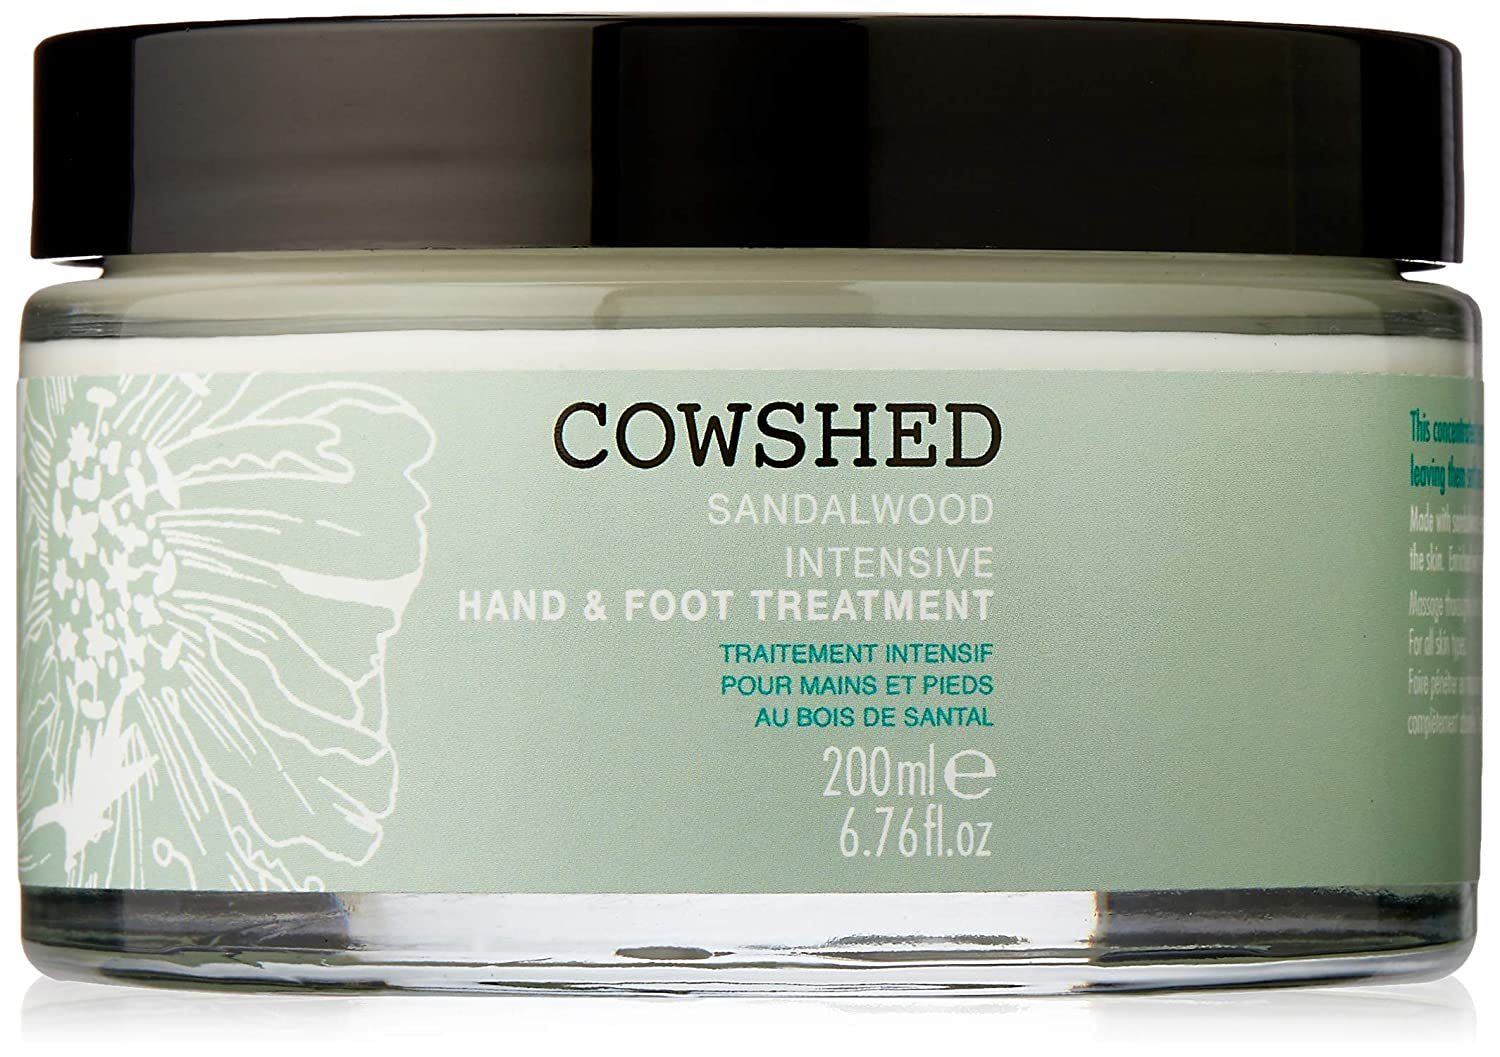 Cowshed - Sandalwood Intensive Hand & Foot Treatment - 200ml/6.76oz